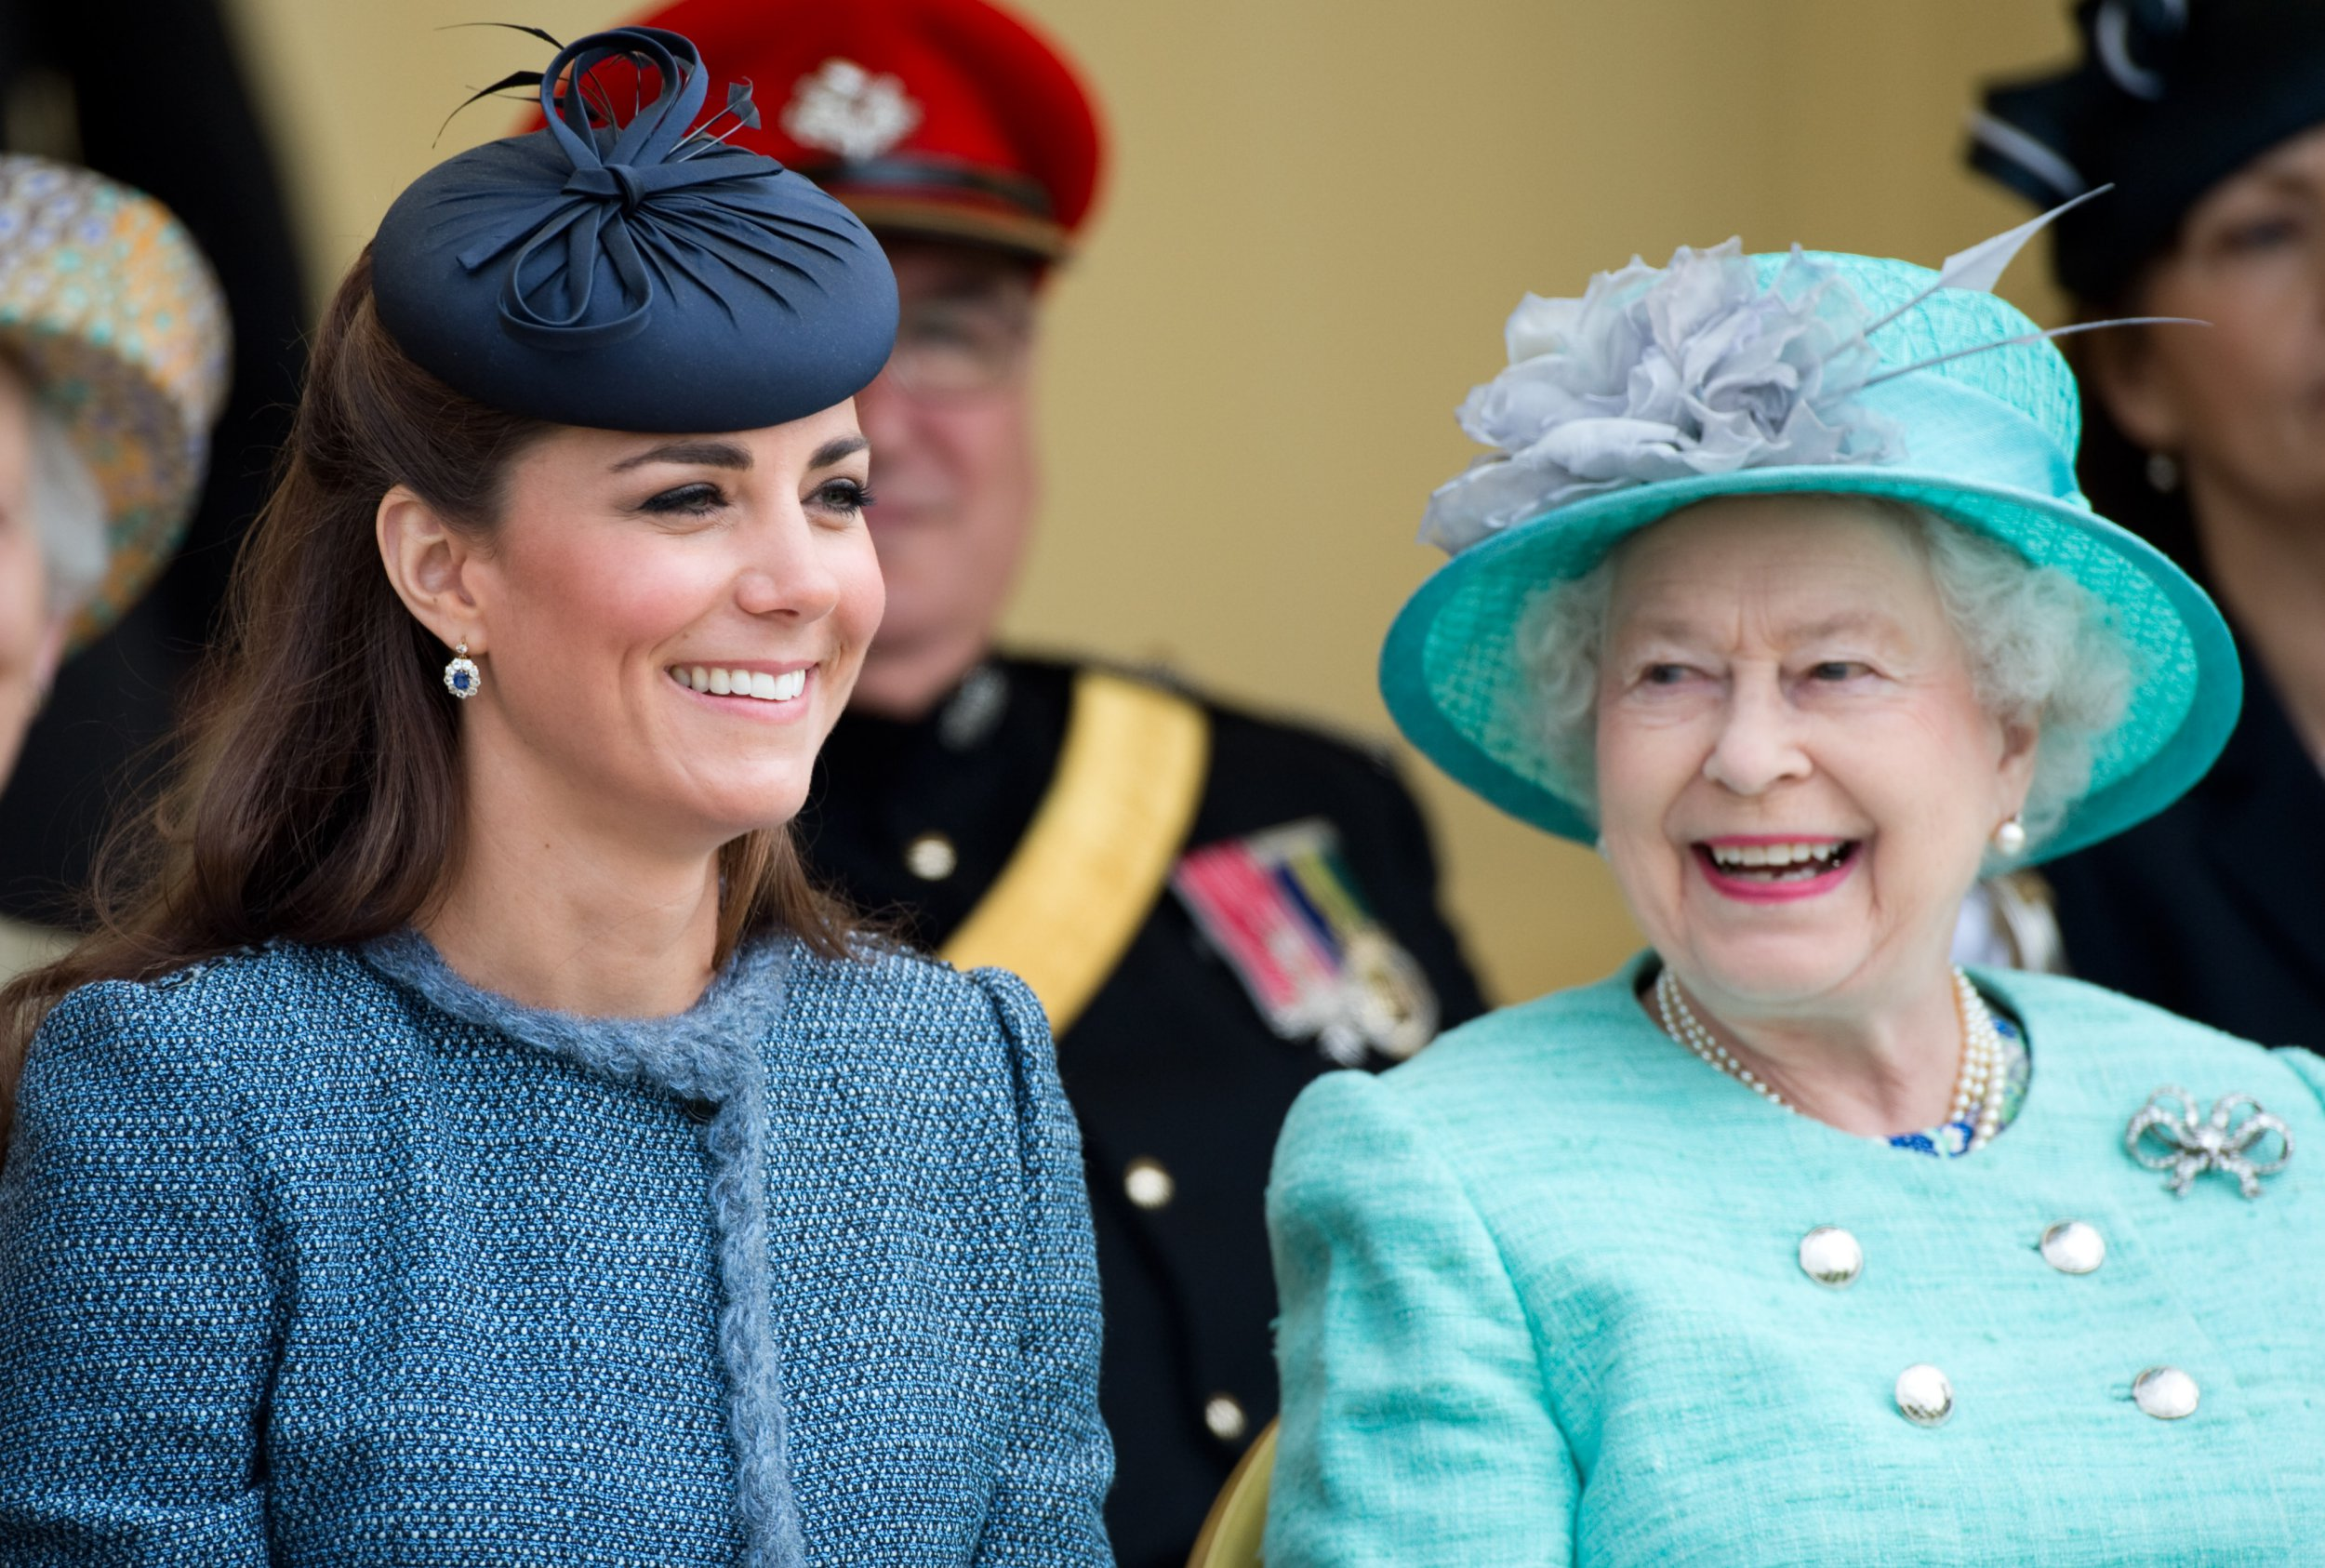 Queen Elizabeth ll and Kate Middleton, Duchess of Cambridge smiling together at Vernon Park